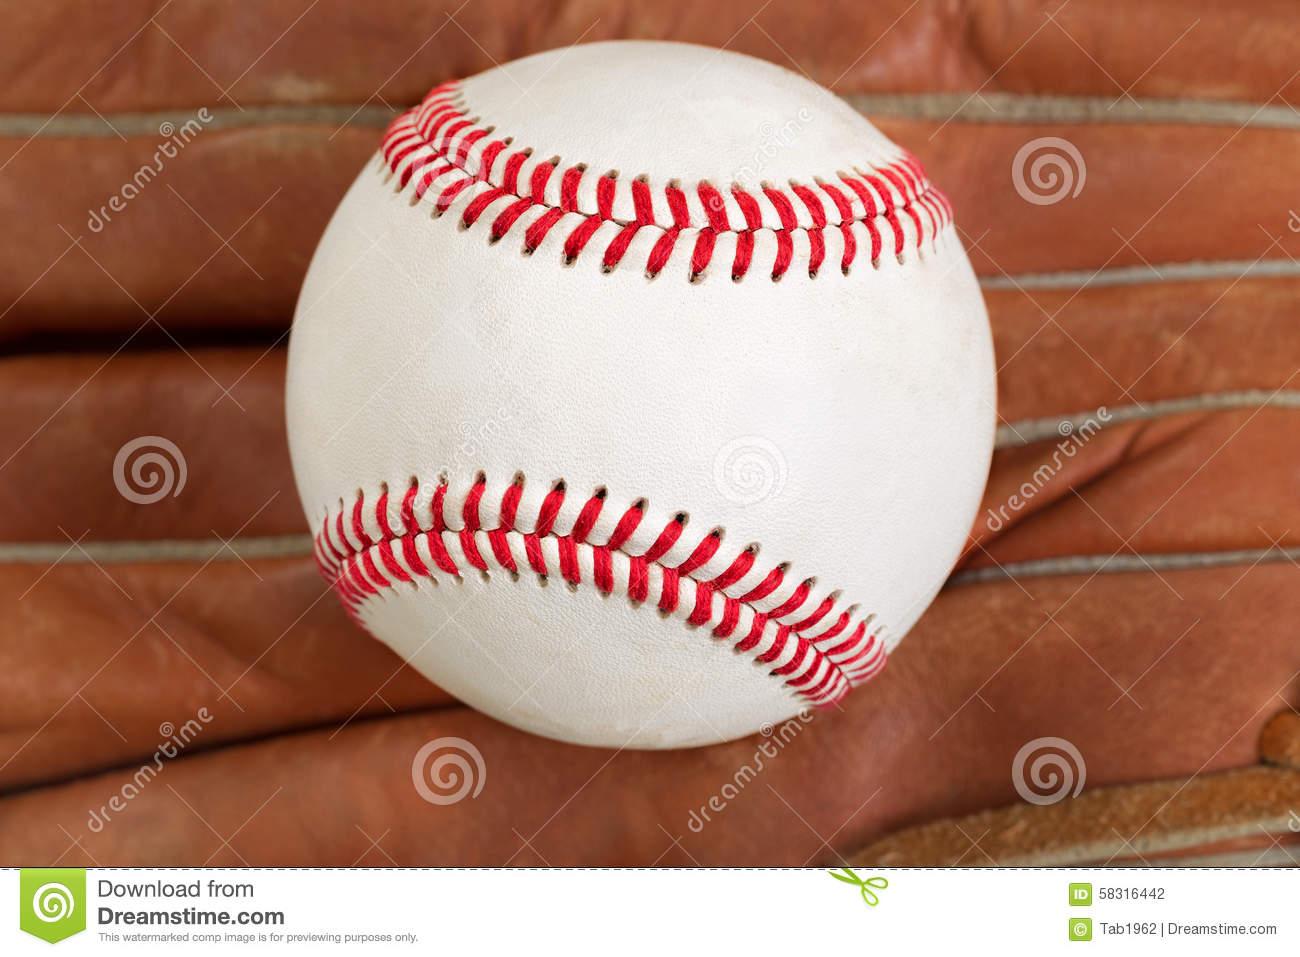 0eed6510fd13 Used Baseball And Glove In Filled Frame Format Stock Photo - Image ...